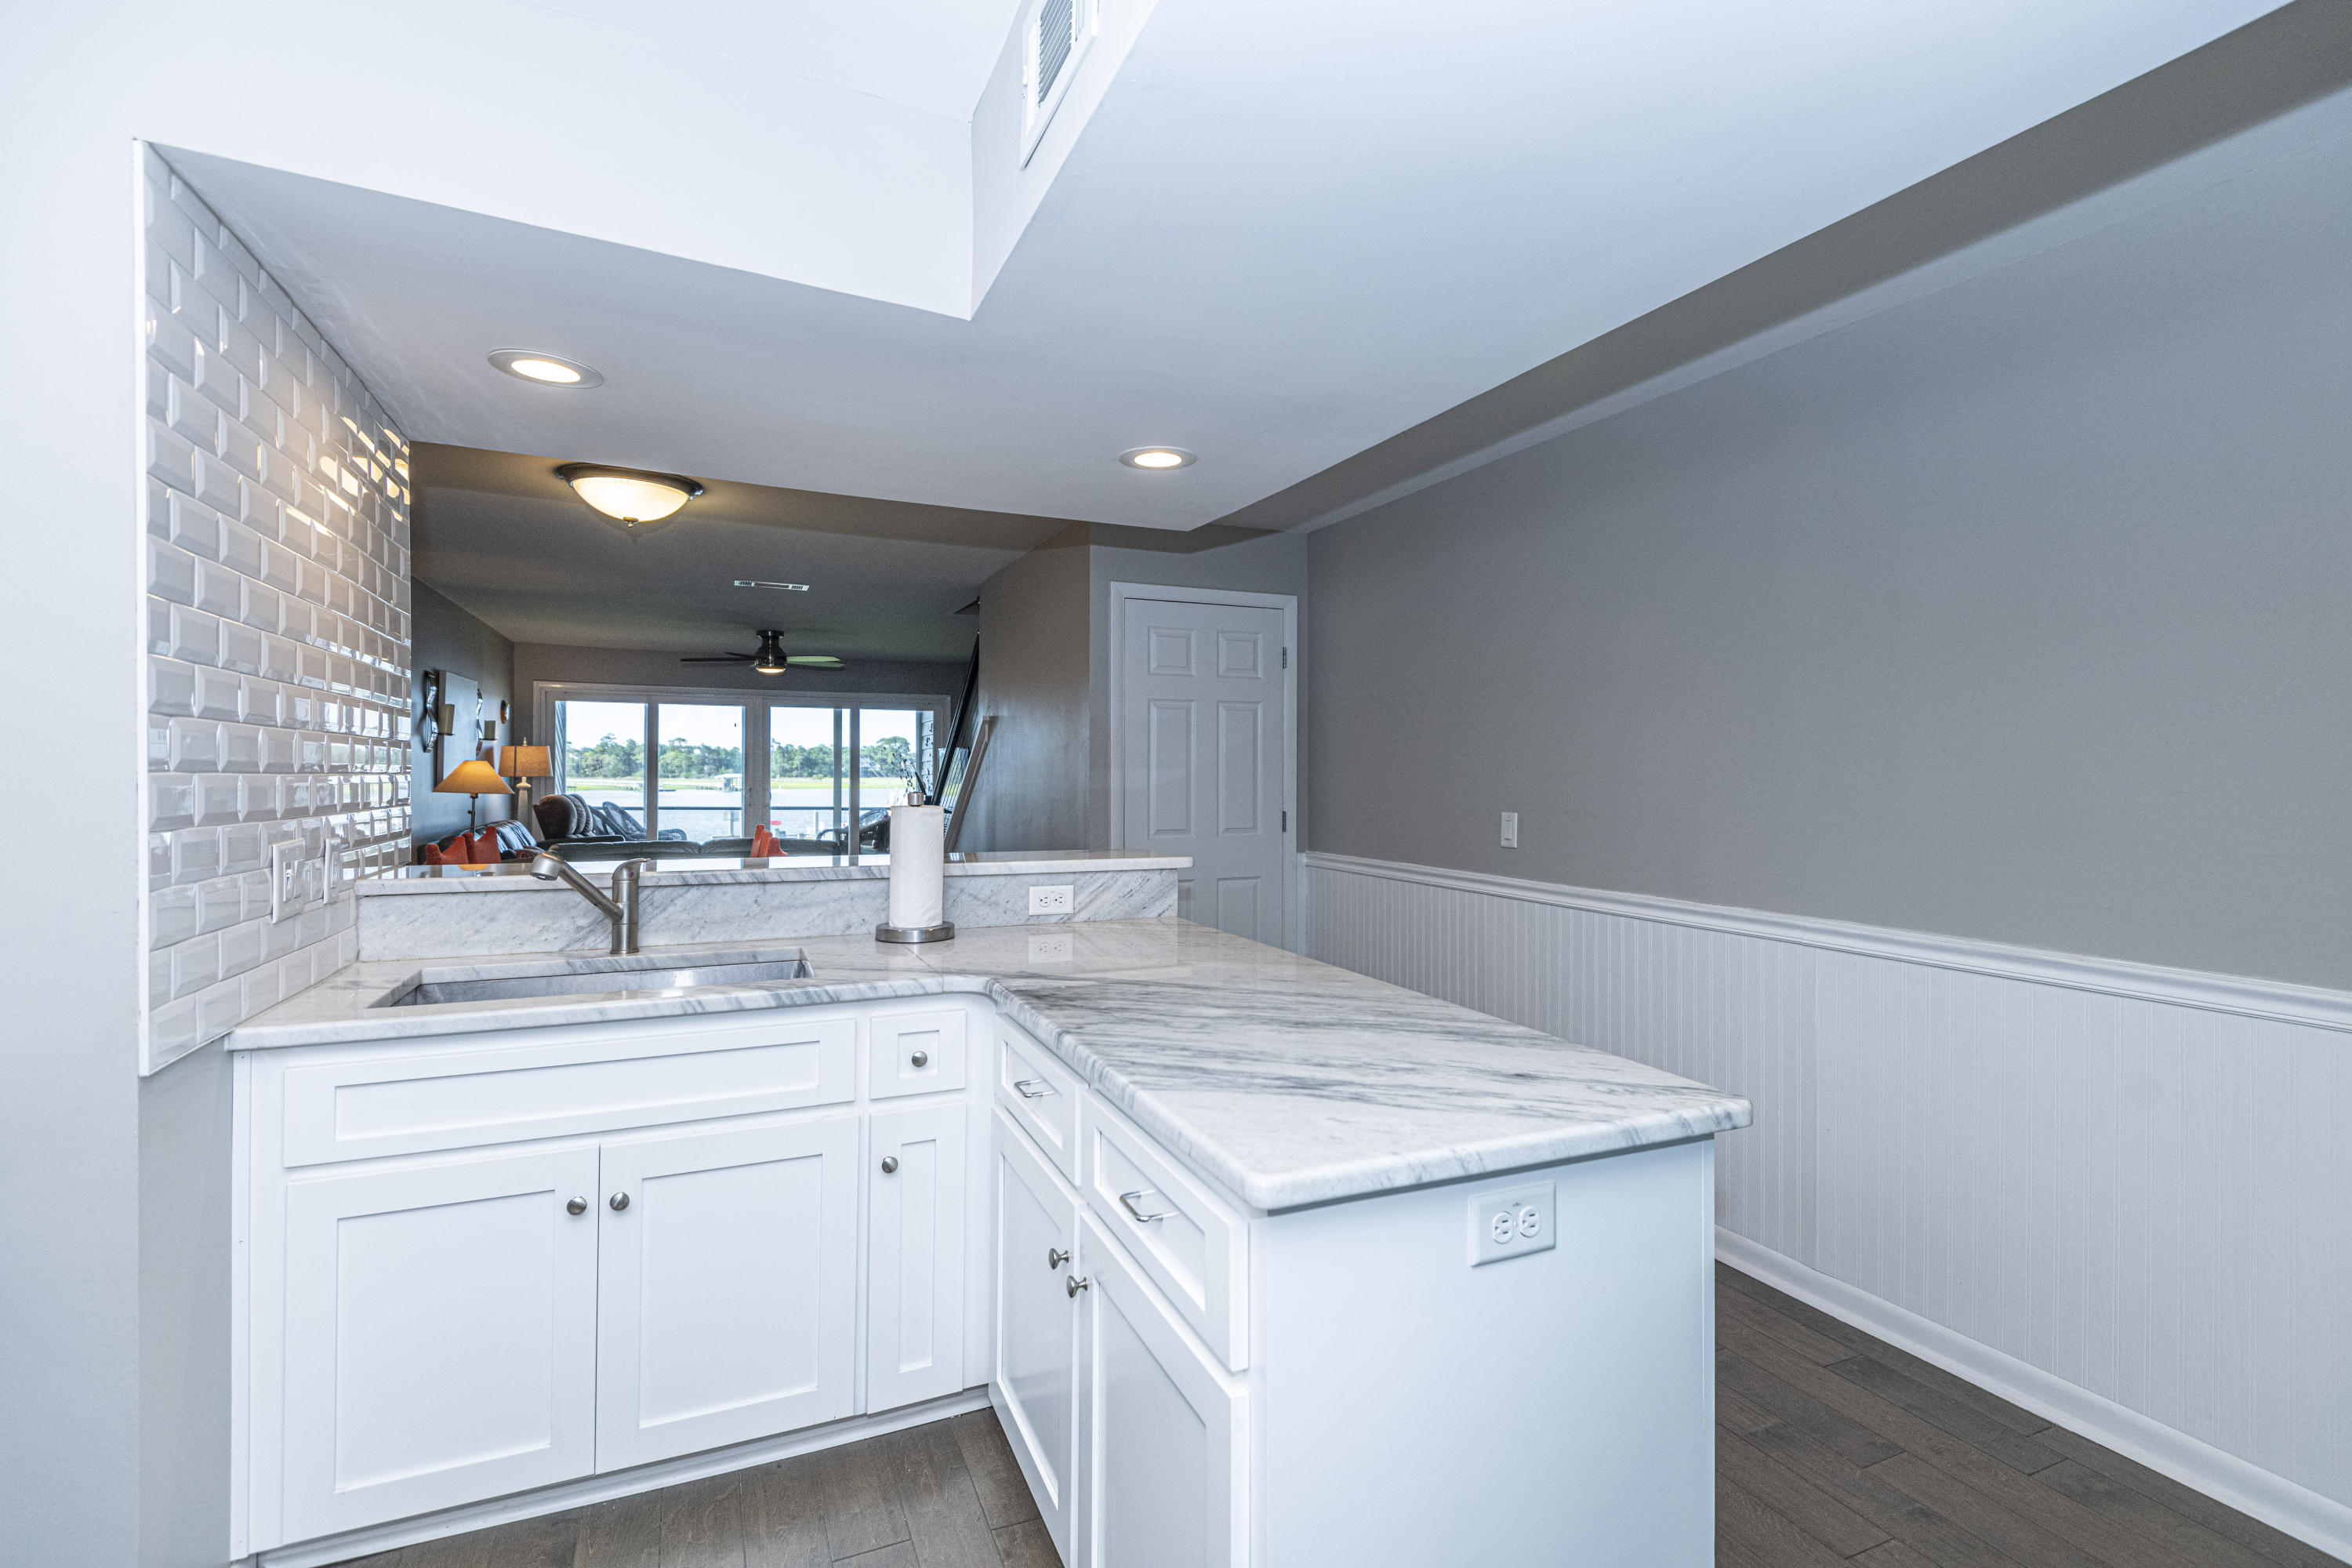 Mariners Cay Homes For Sale - 71 Mariners Cay, Folly Beach, SC - 5